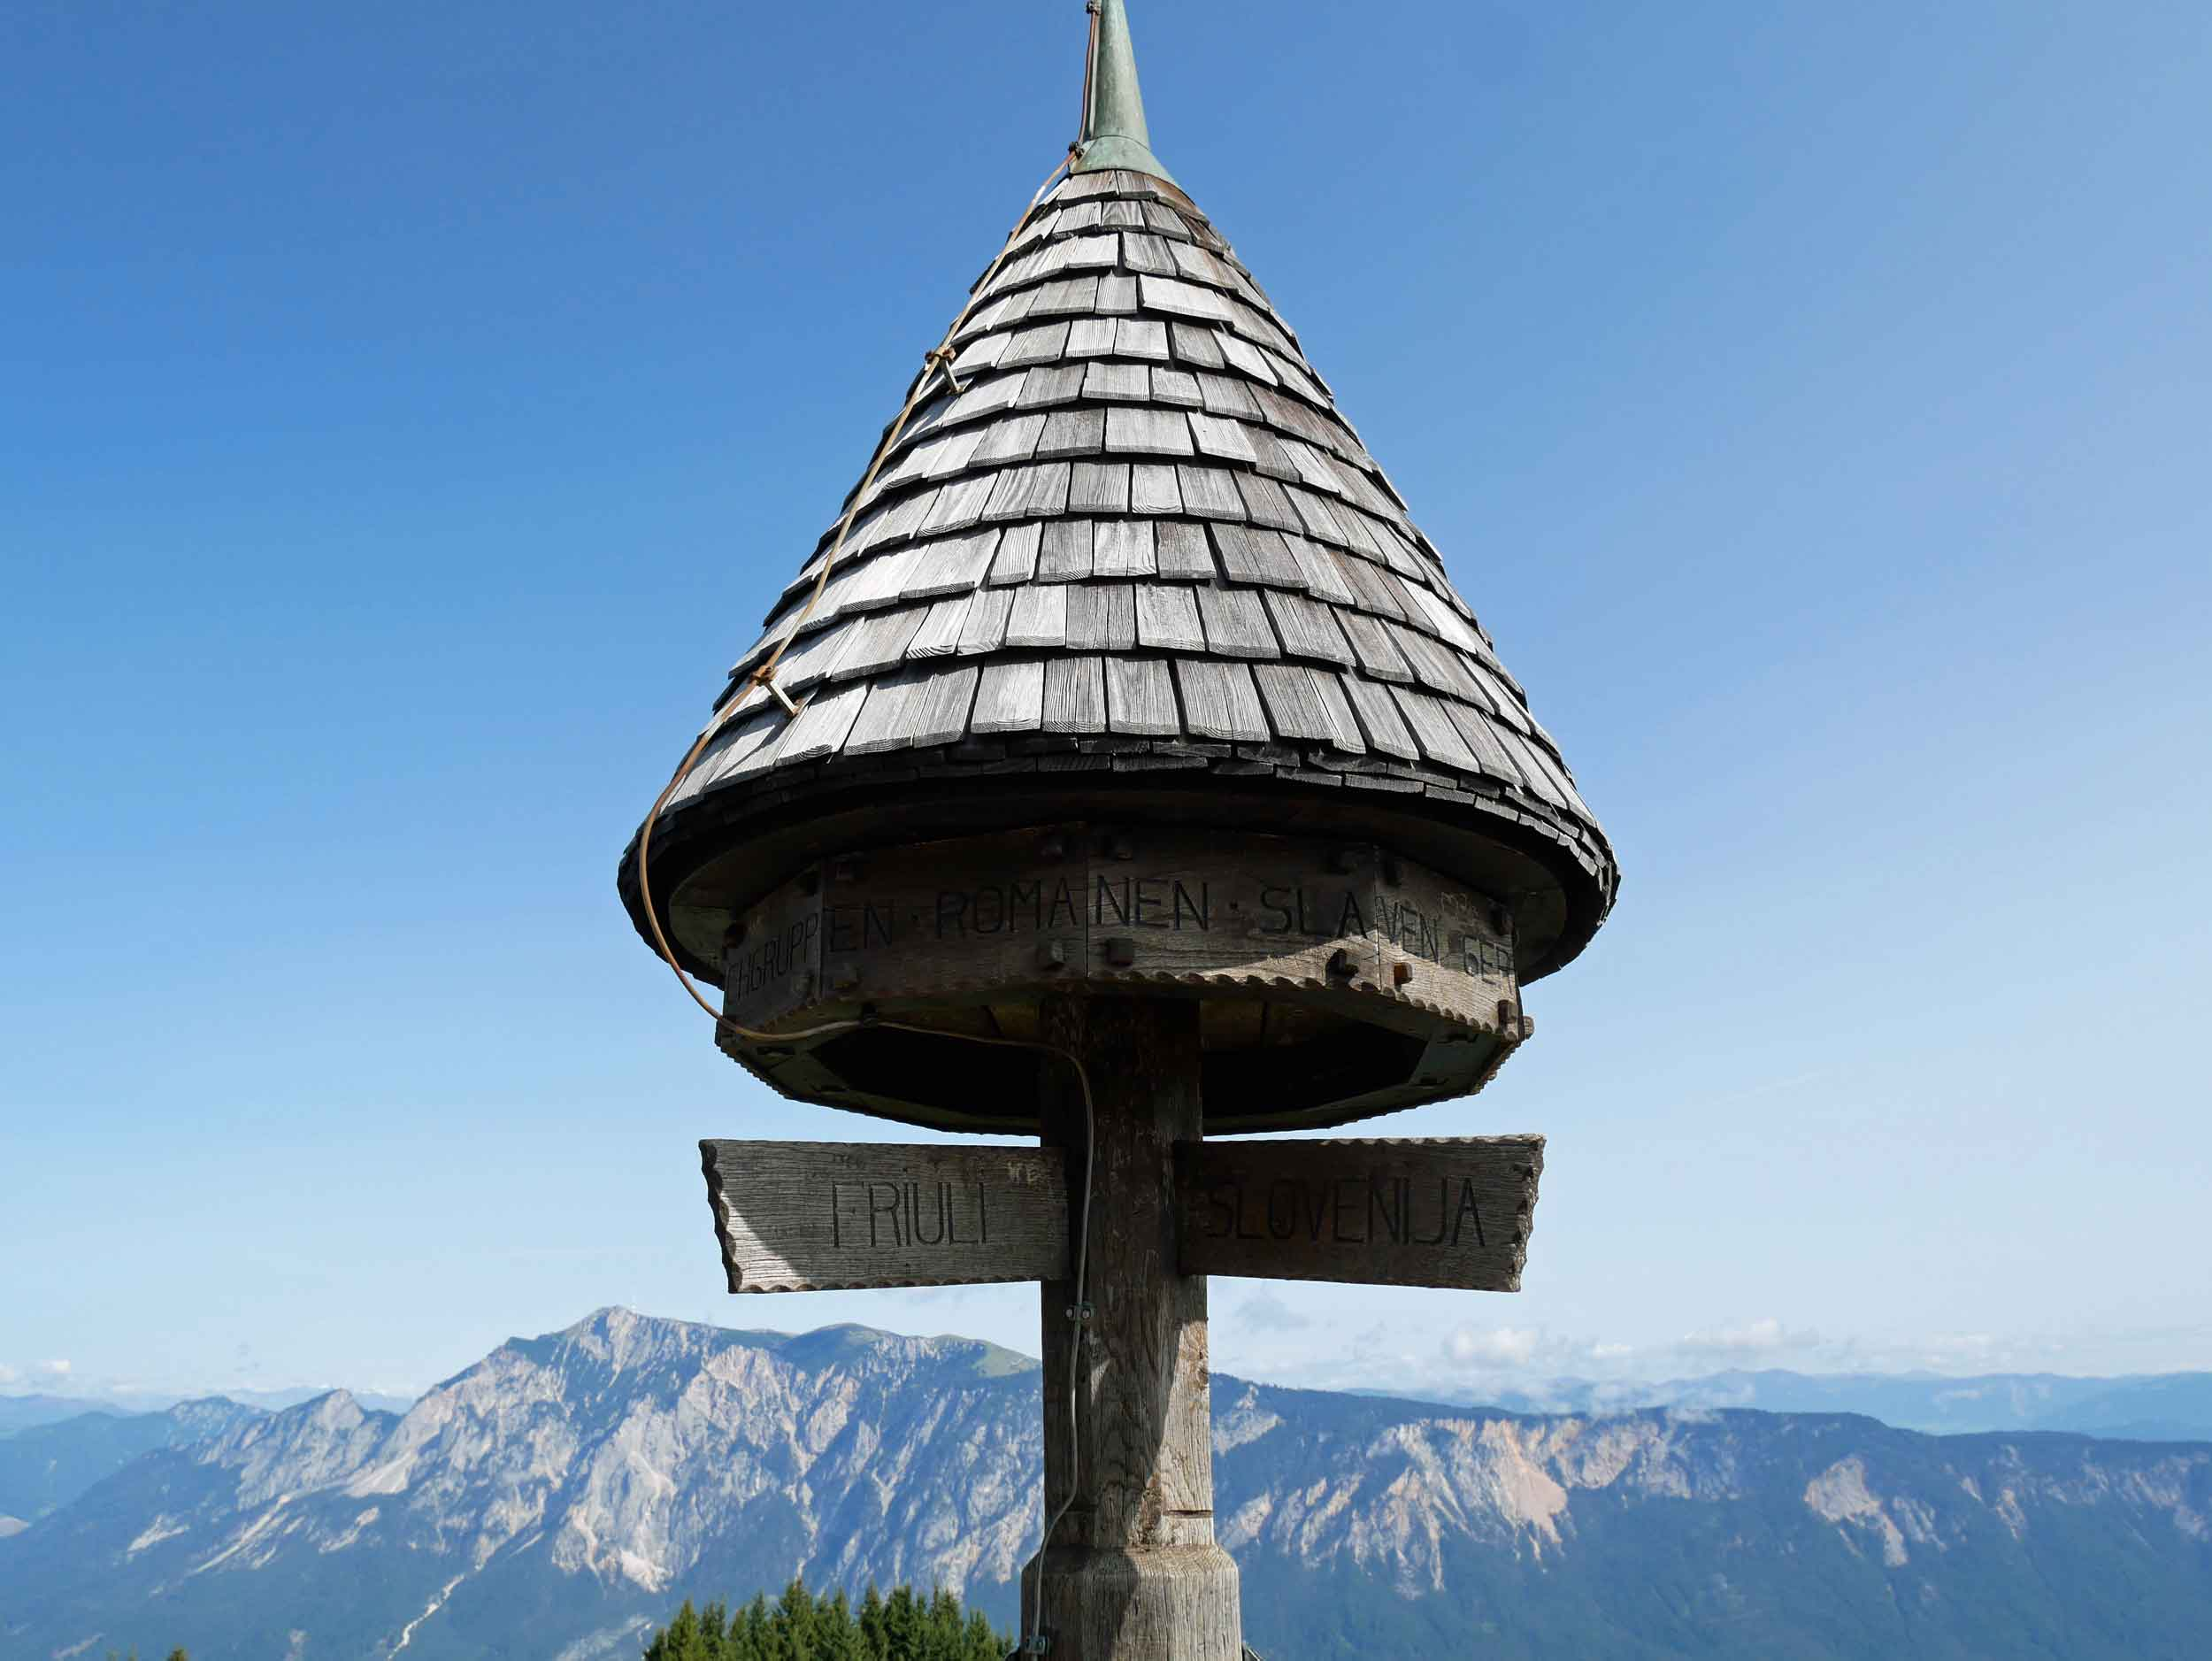 At the top of Tromeja was a marker defining the borders between Slovenia, Italy and Austria.